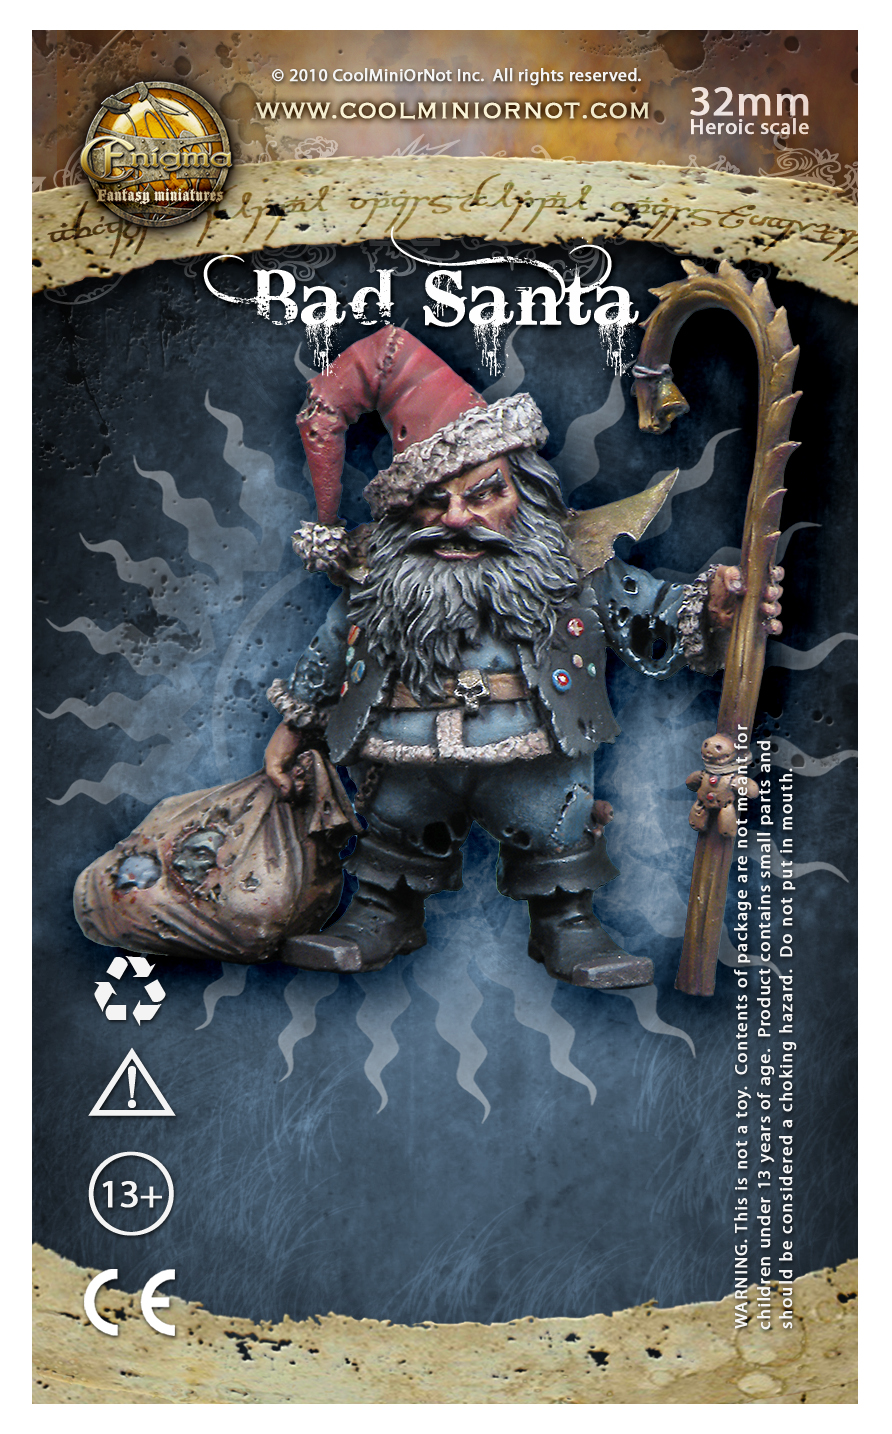 Bad Santa (Christmas 2009) Seasonal Figure